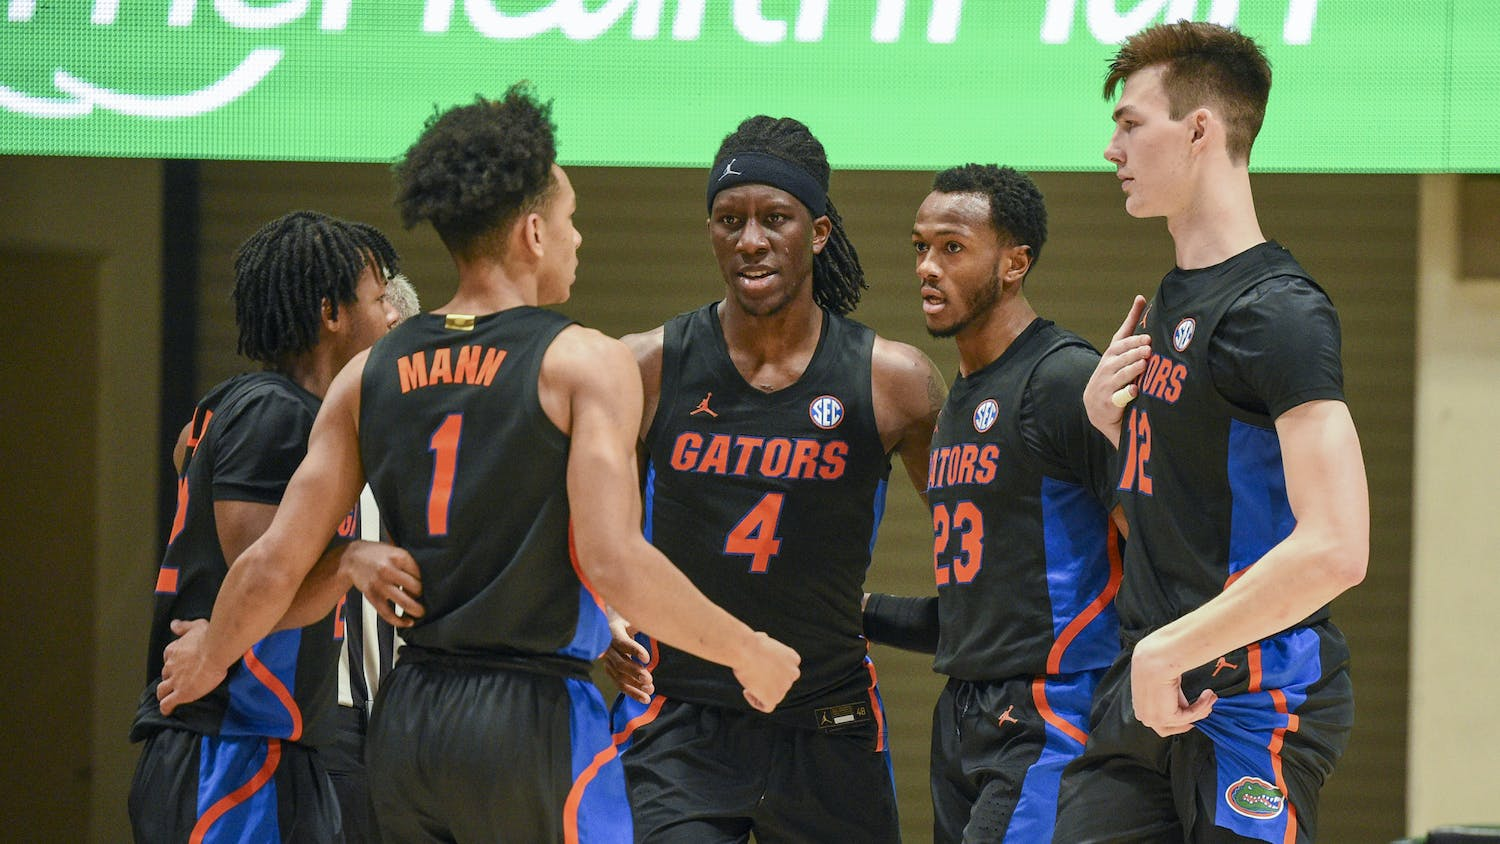 Coming into a blockbuster matchup against the Mountaineers Saturday evening, UF looked much improved guarding the interior. Photo courtesy of the SEC Media Portal.